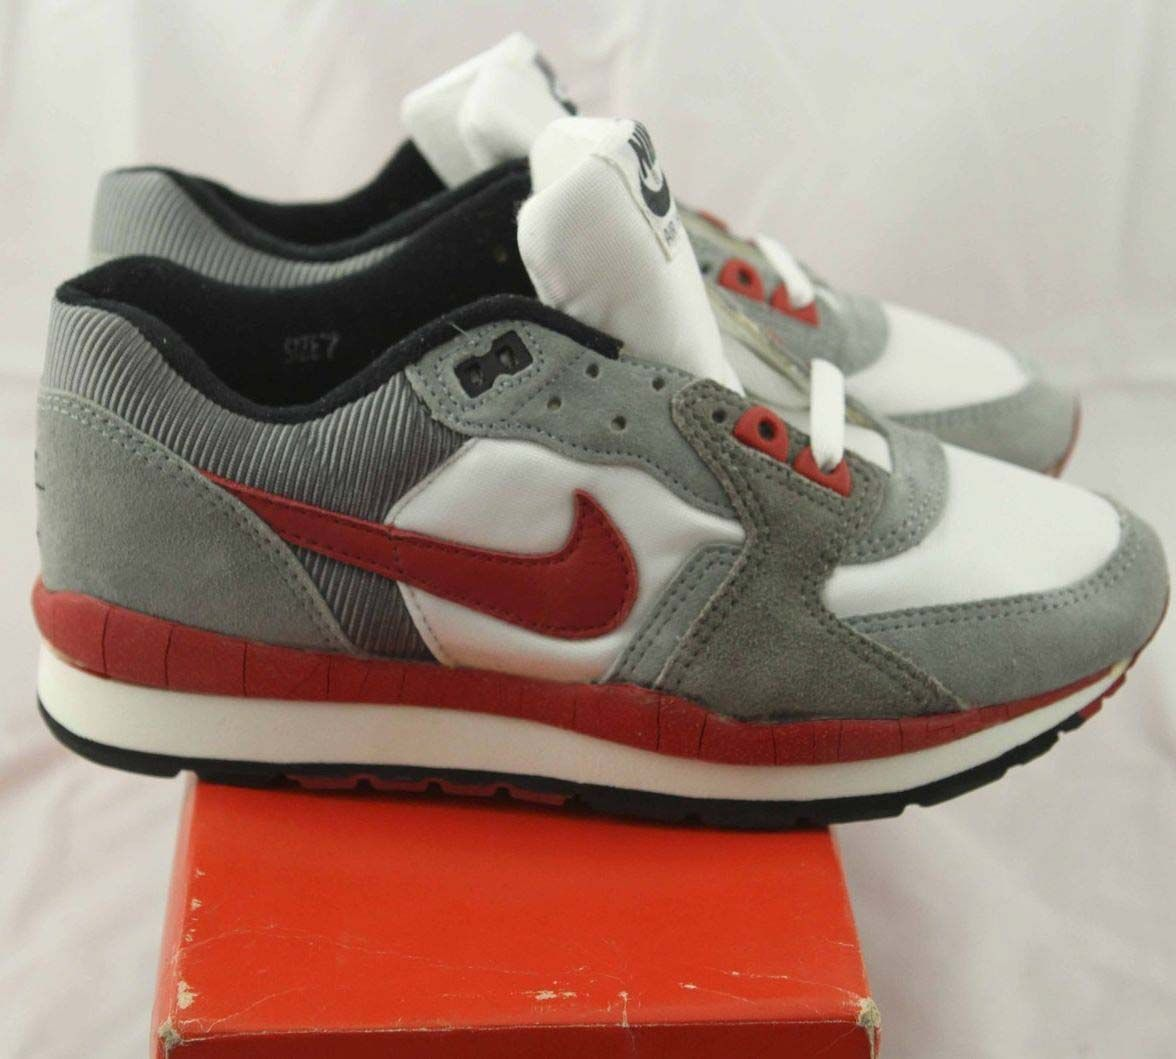 Nike Air Windrunner International 1988 retro | ViNTage dESIGNs | Pinterest  | Retro, Trainers and Trainer shoes